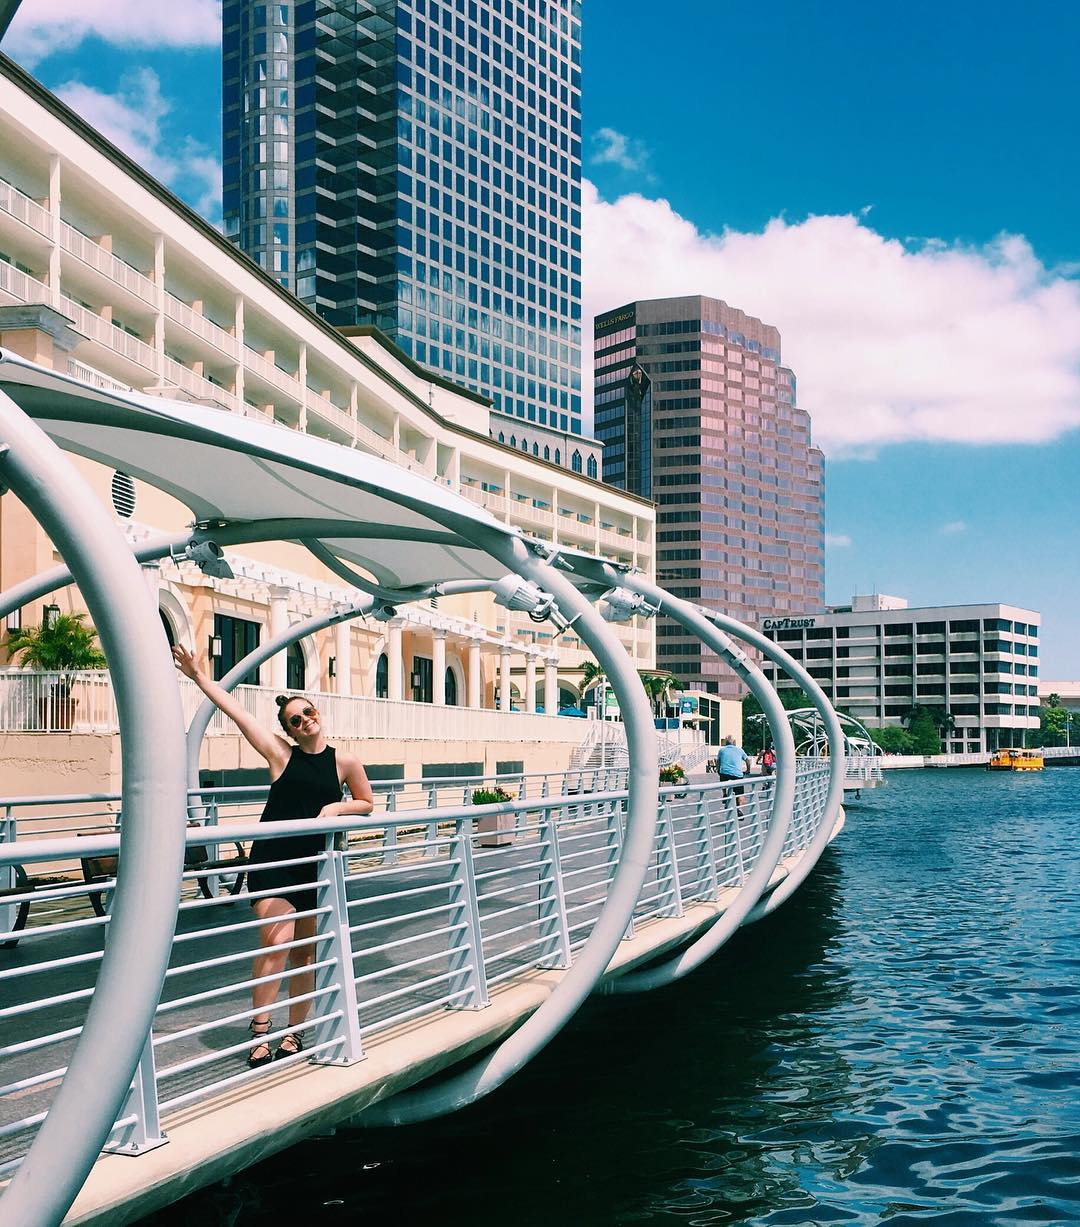 What's in Tampa? Riverwalk